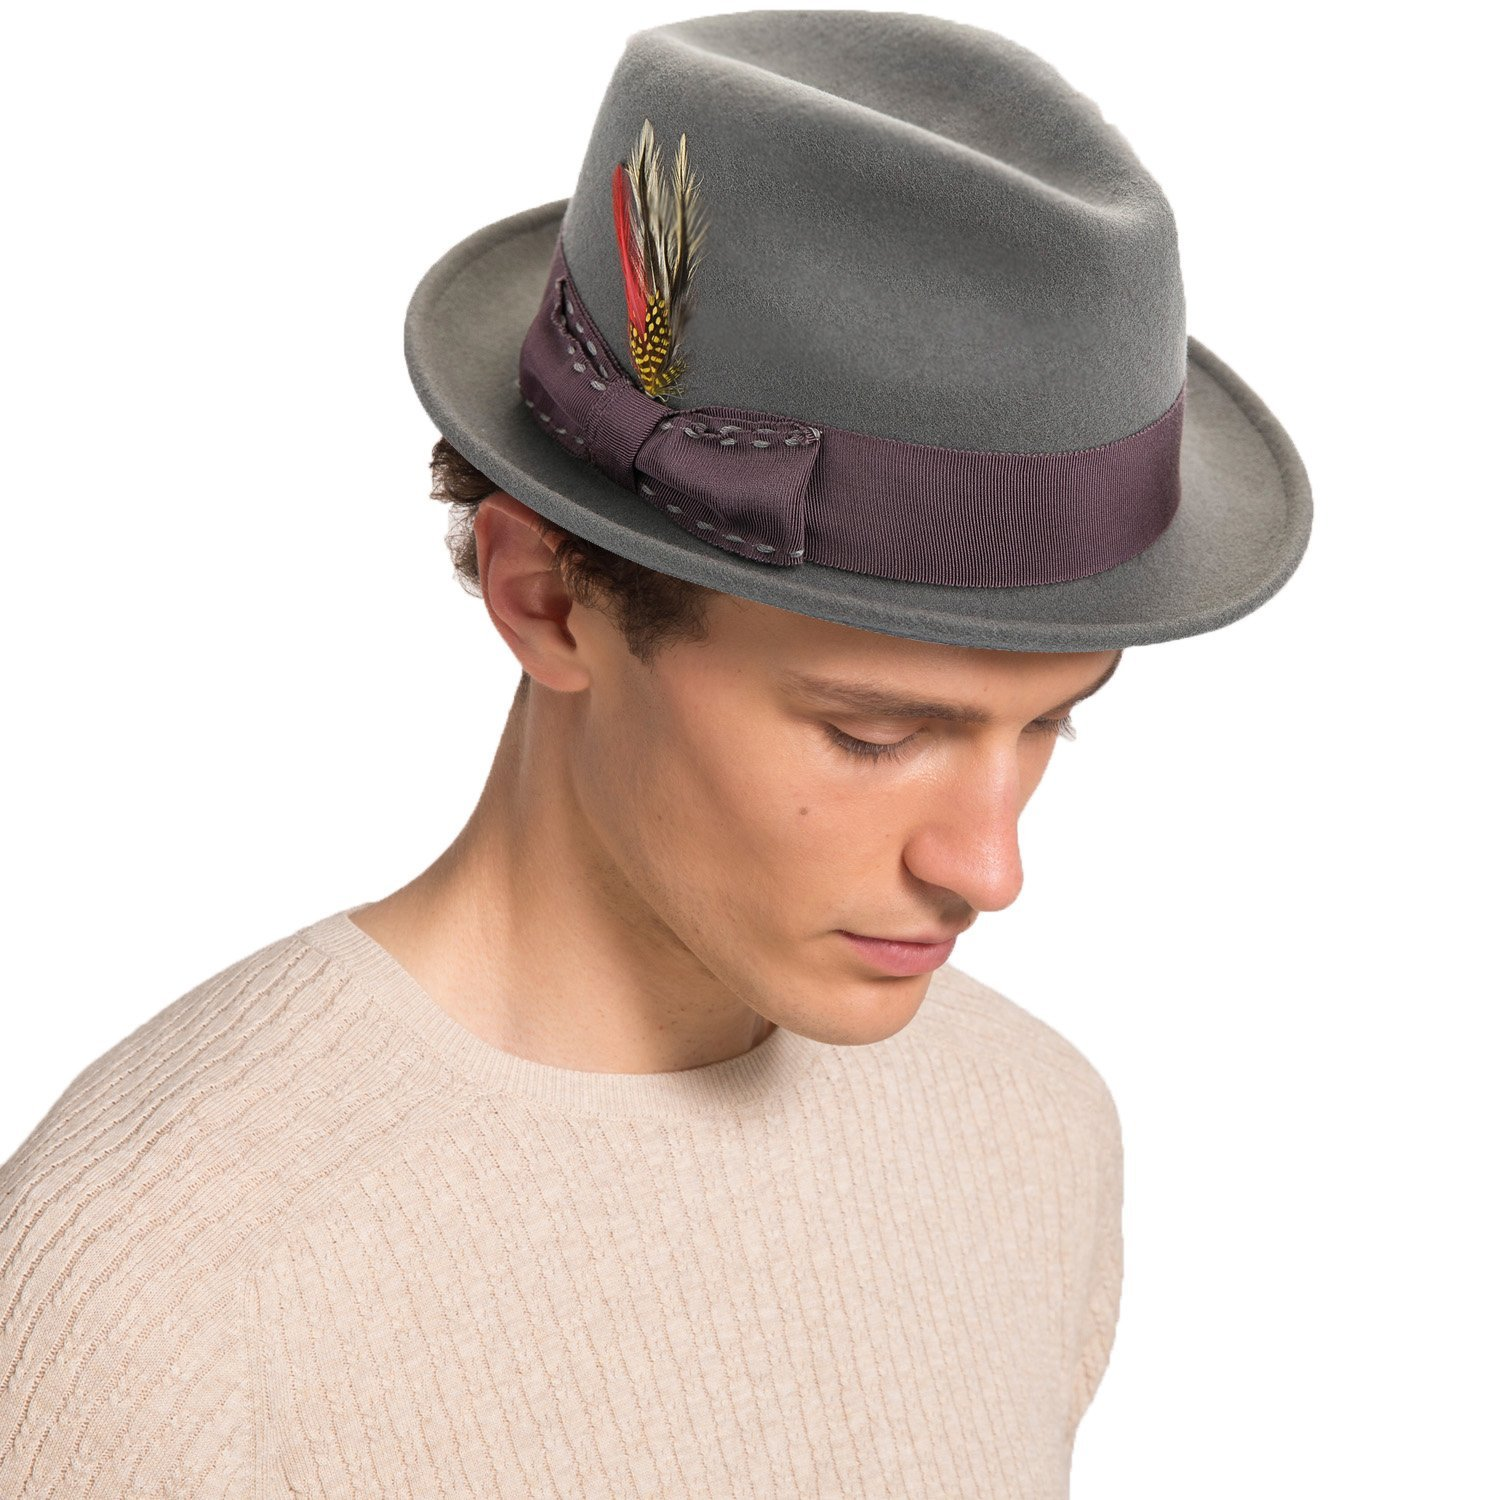 cfe06d27cb8 Get Quotations · Janetshats Fedora Hat for Men Wool Felt Hat  Stain-Resistant Crushable Trilby Handmade Stitching Bowknot